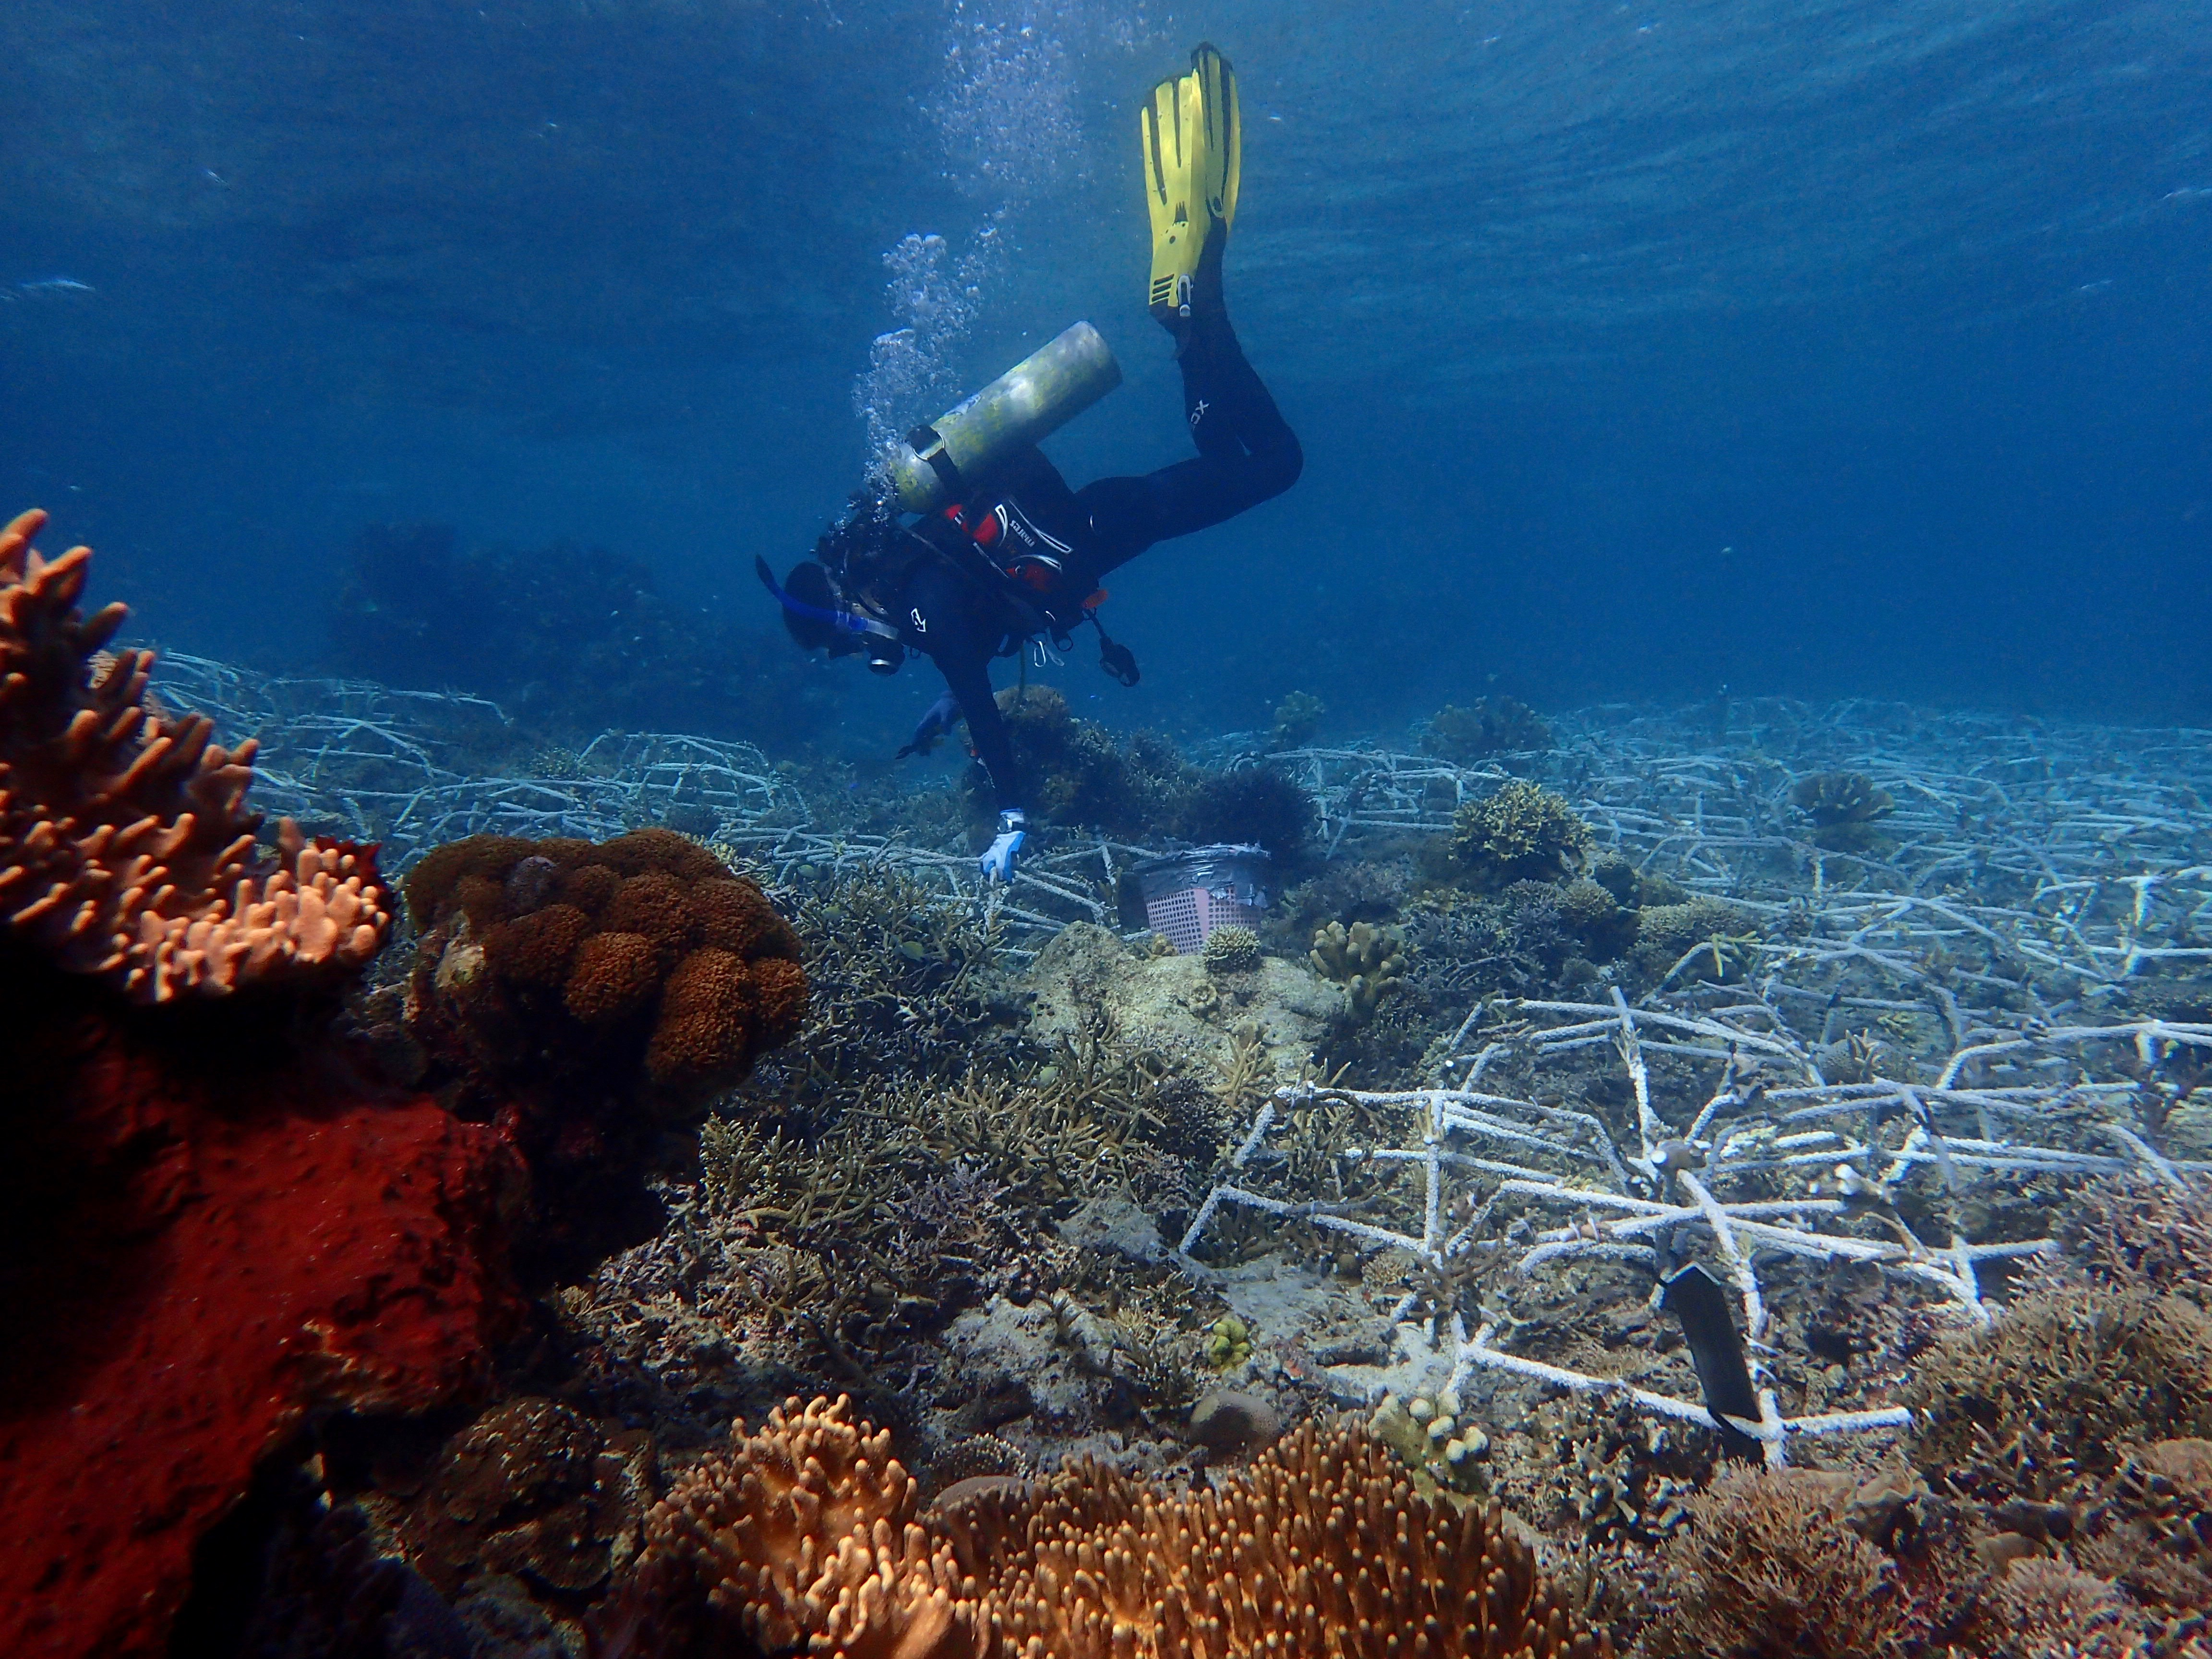 Indonesia Search Date 2018 10 27 Produk Ukm Bumn Hot Wheels Bat Mobile Ag Garage Even After Being Severely Damaged By Blast Fishing And Coral Mining Reefs Can Be Rehabilitated Over Large Scales Using A Relatively Inexpensive